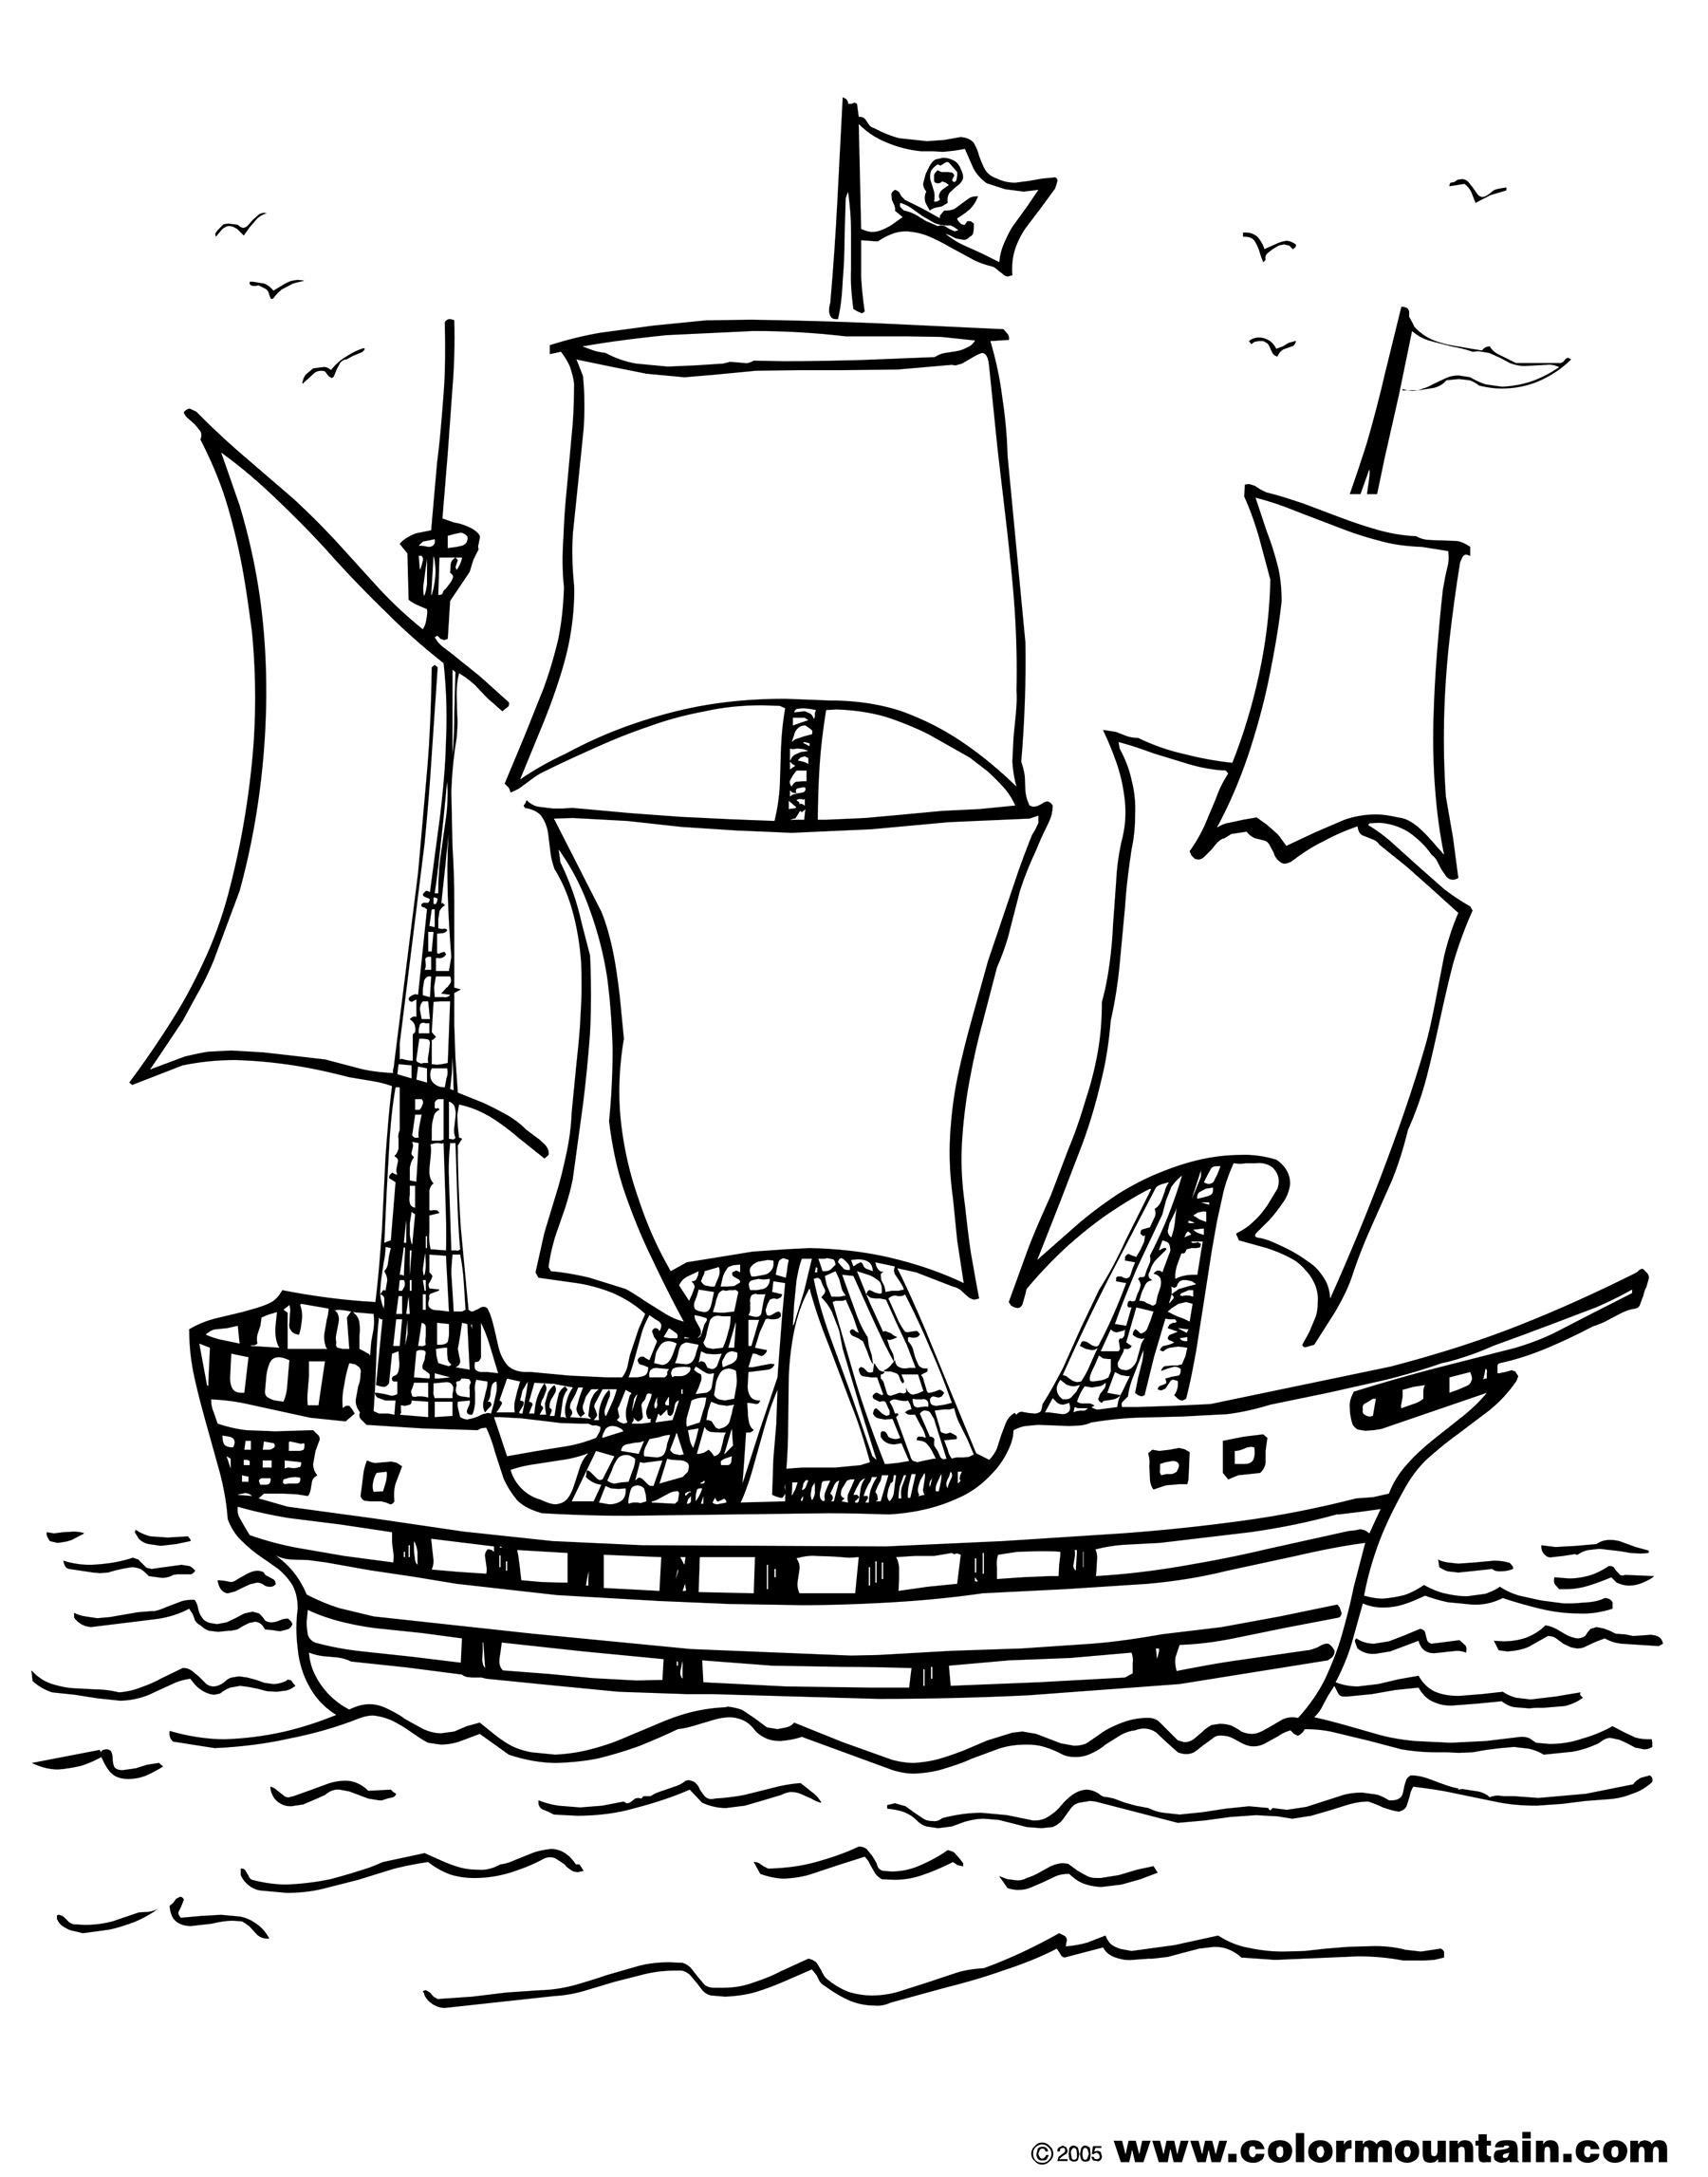 ship coloring pages sky high tall ships coloring pages ship free sailing ship coloring pages